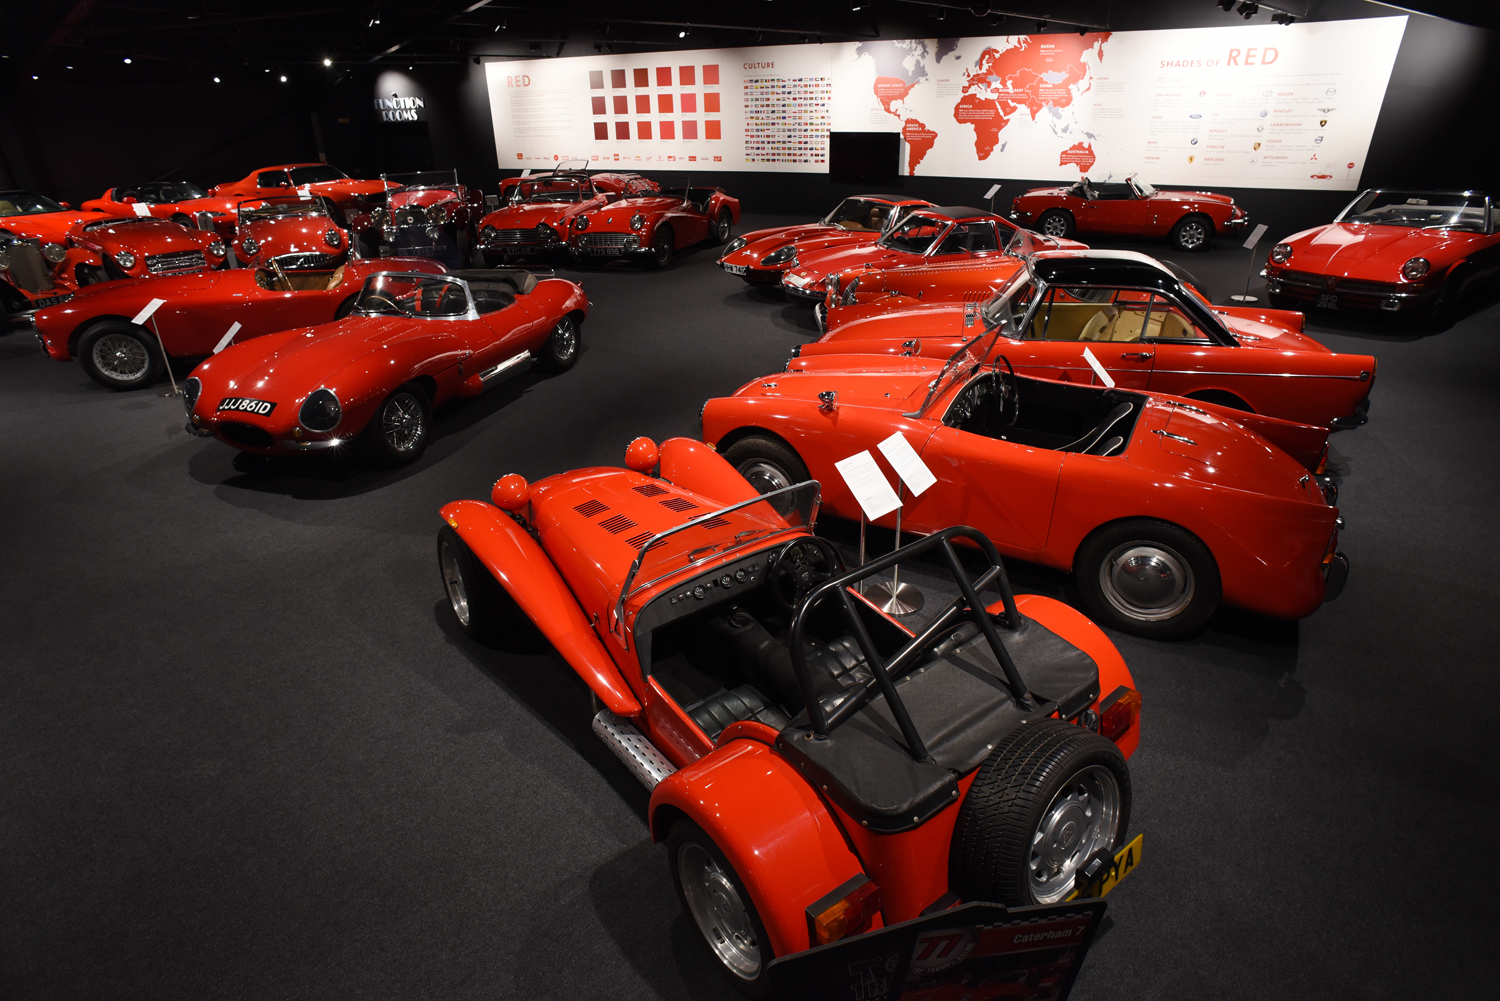 21 of the best car and motorcycle museums to visit